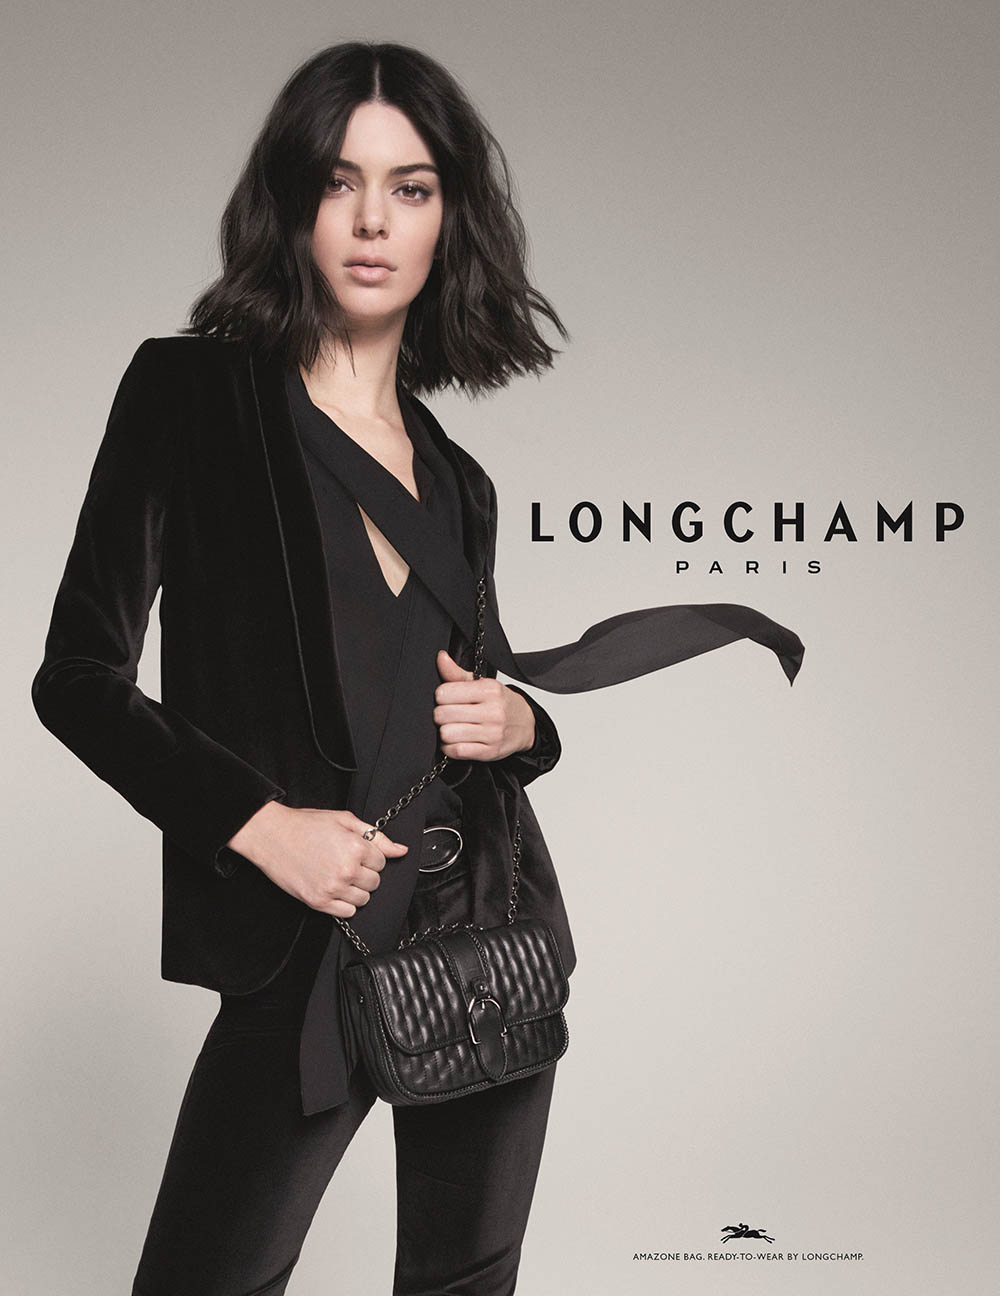 Longchamp Fall Winter 2018 Campaign